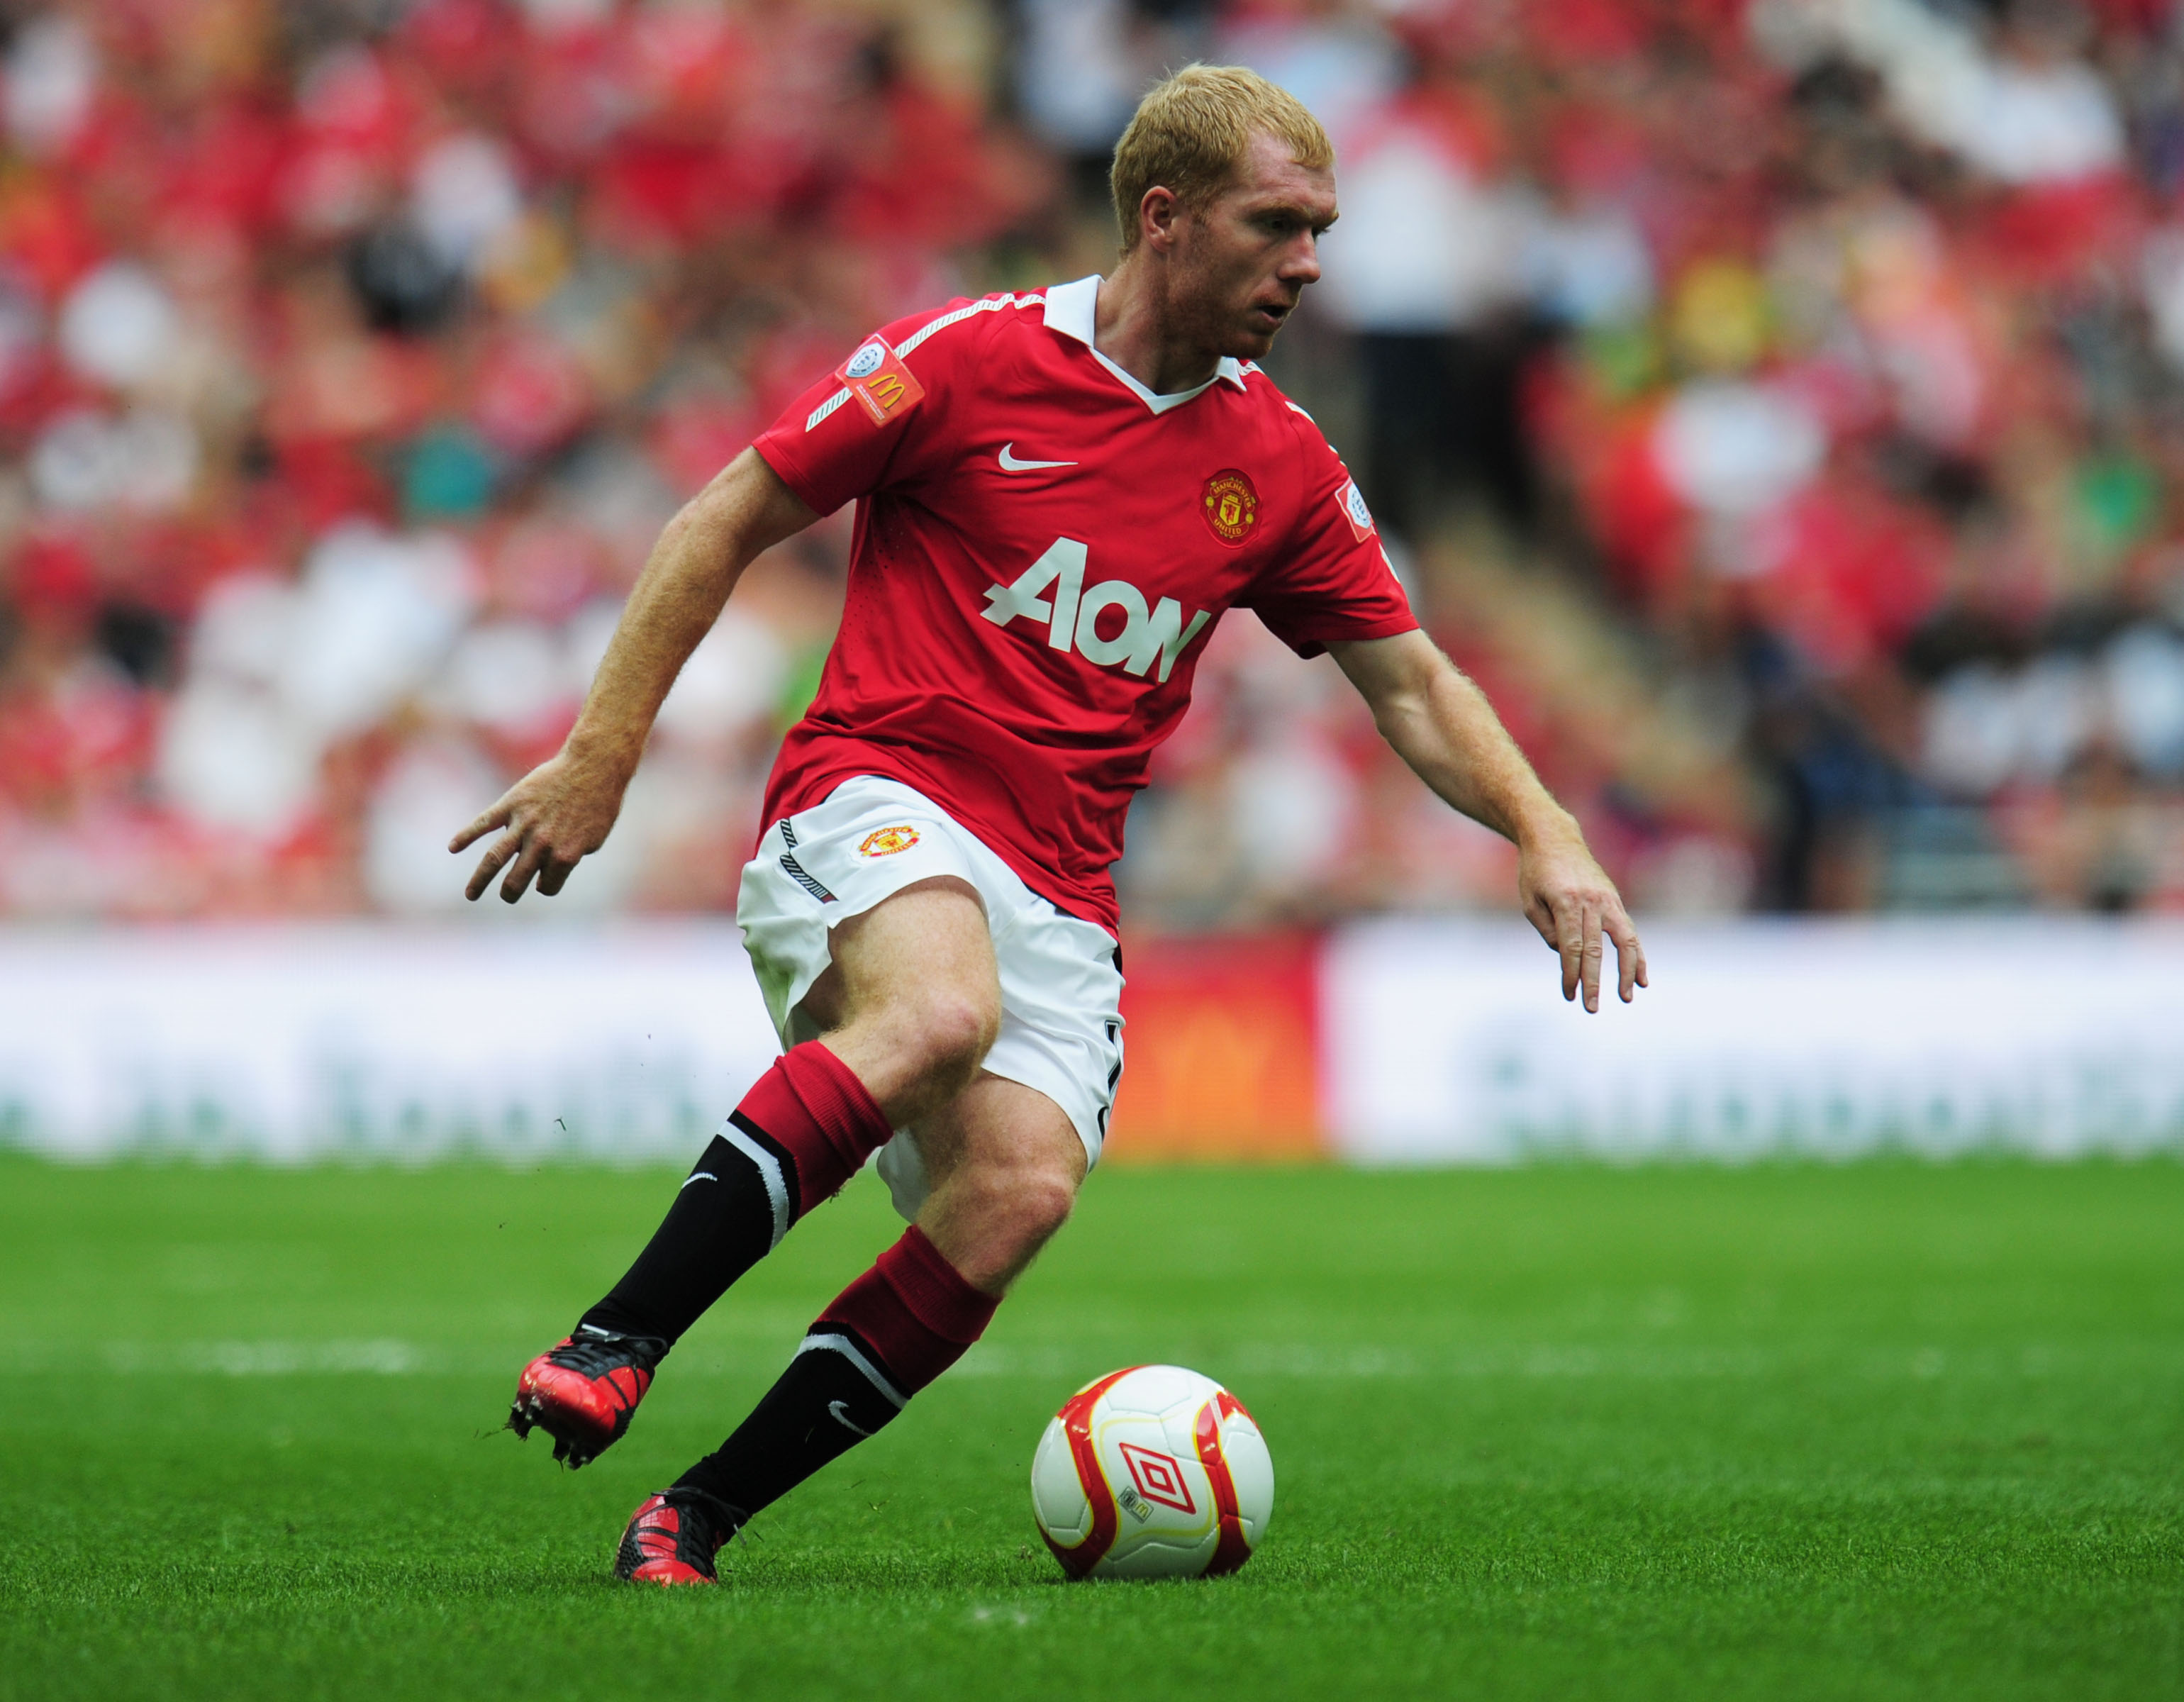 LONDON, ENGLAND - AUGUST 08:  Paul Scholes of Manchester United controls the ball during the FA Community Shield match between Chelsea and Manchester United at Wembley Stadium on August 8, 2010 in London, England.  (Photo by Shaun Botterill/Getty Images)